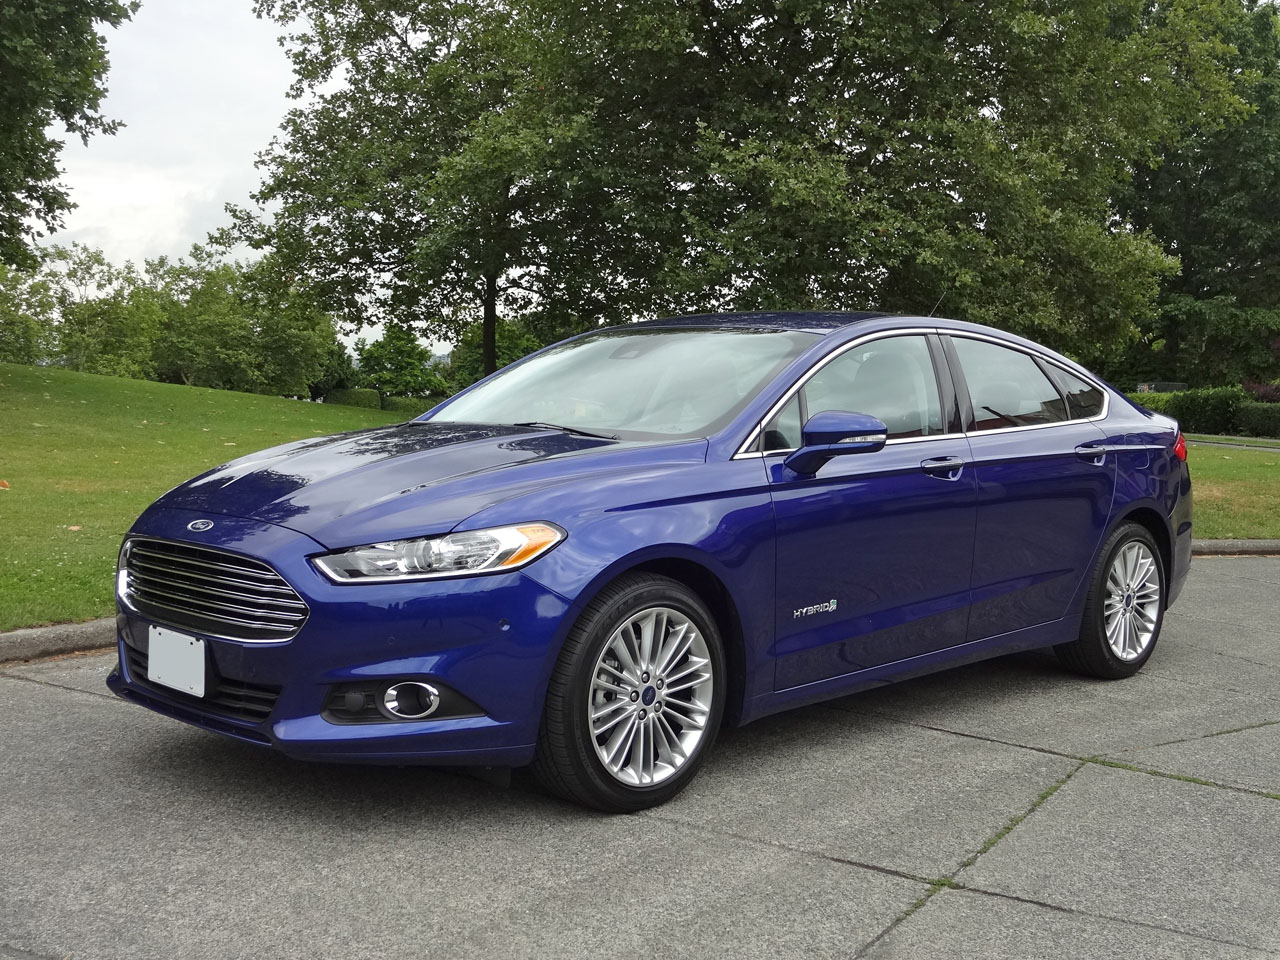 2015 ford fusion hybrid se road test review carcostcanada. Black Bedroom Furniture Sets. Home Design Ideas